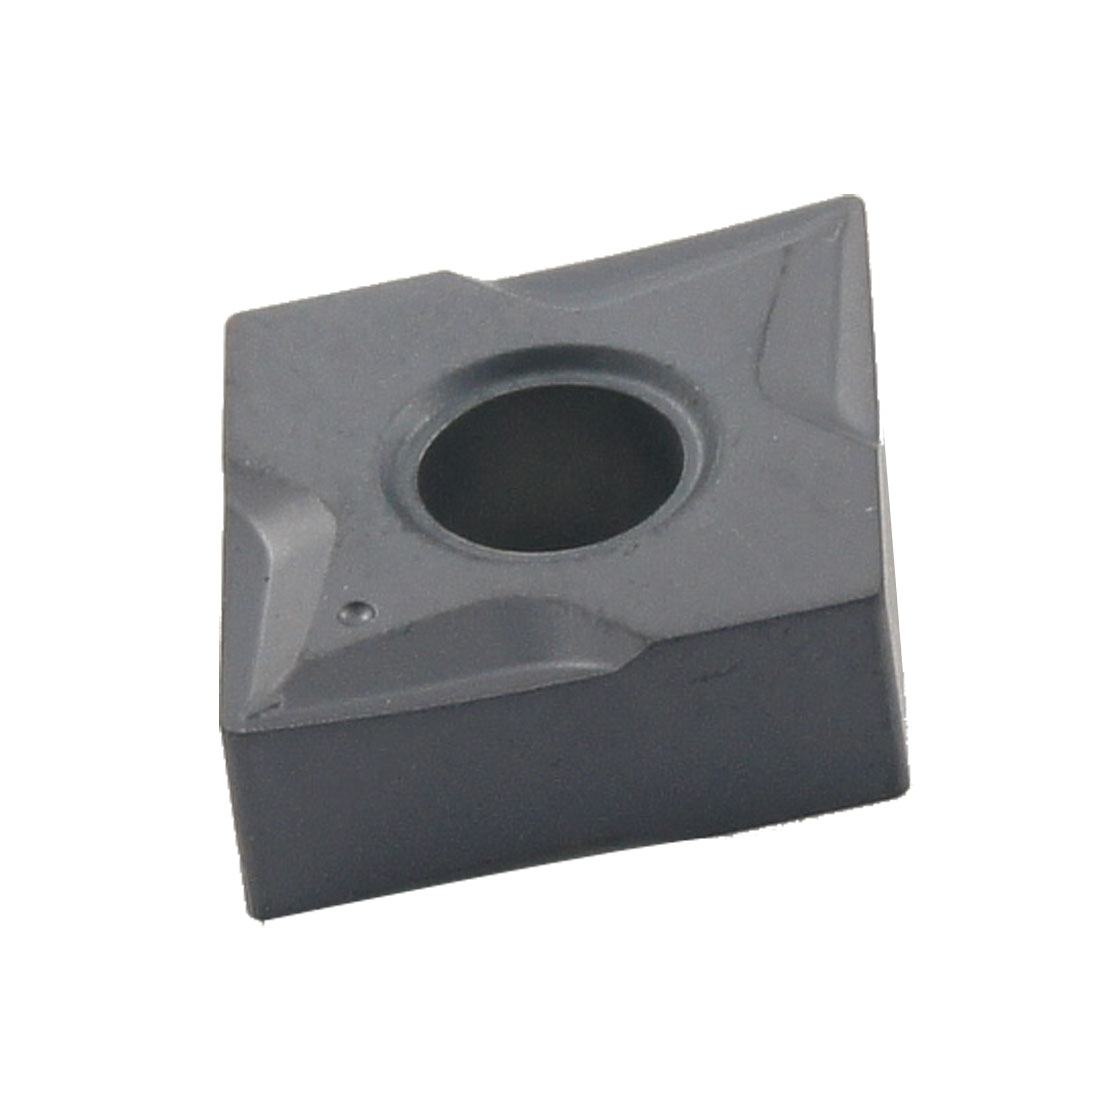 "CNMG120404NN LT10 1/5"" Thick 4 Point Carbide Insert for Boring Bar"